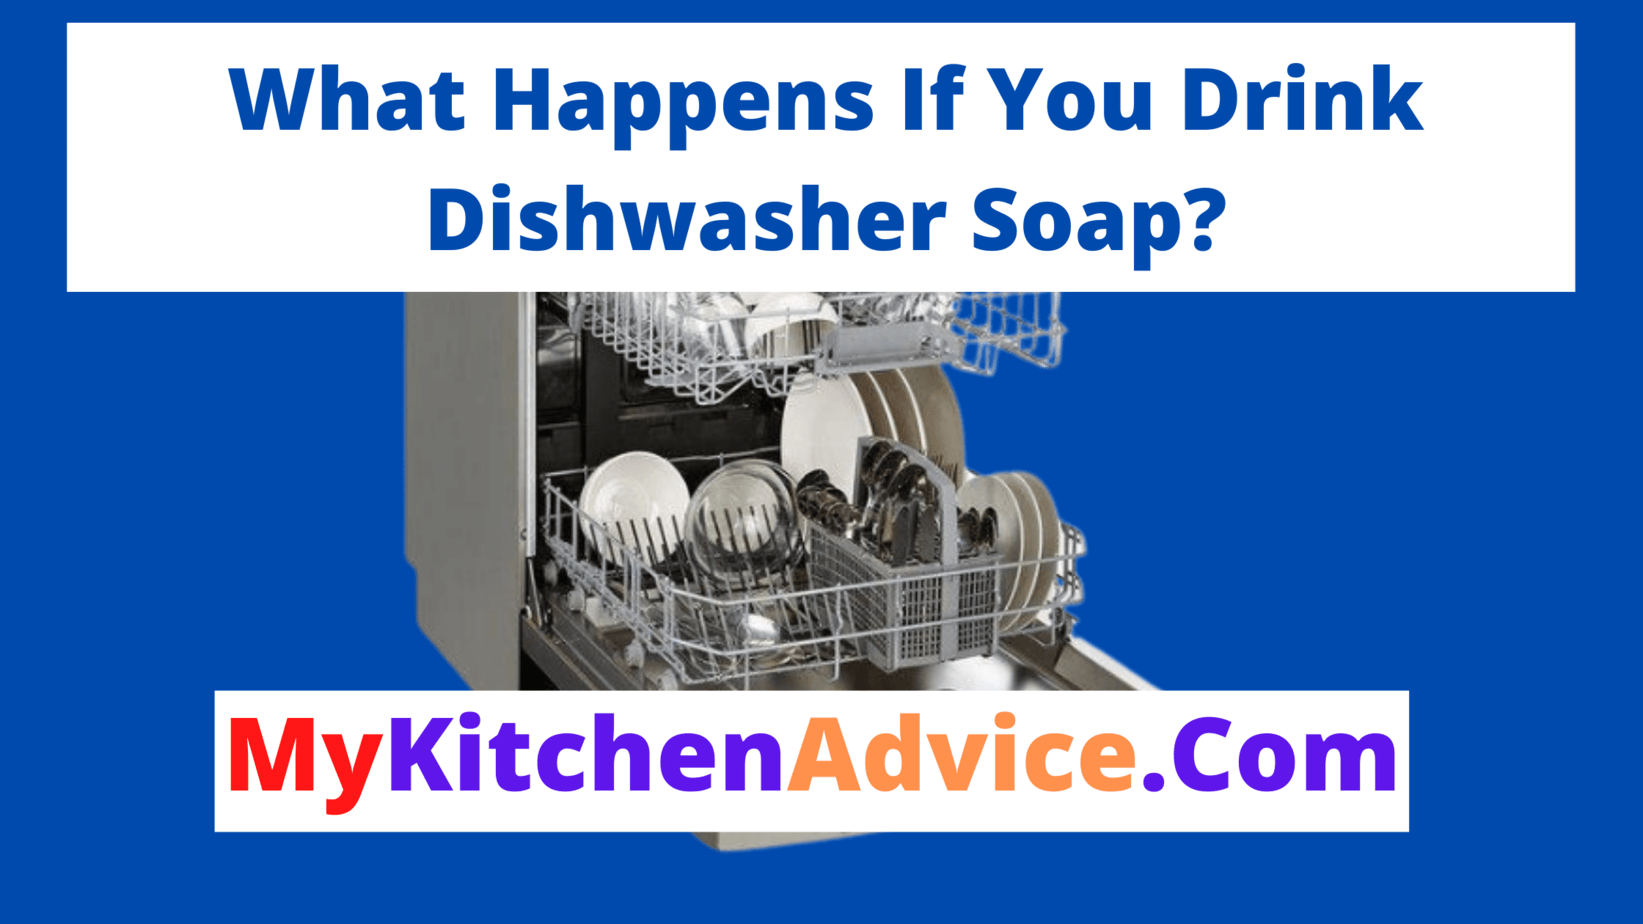 What Happens If You Drink Dishwasher Soap